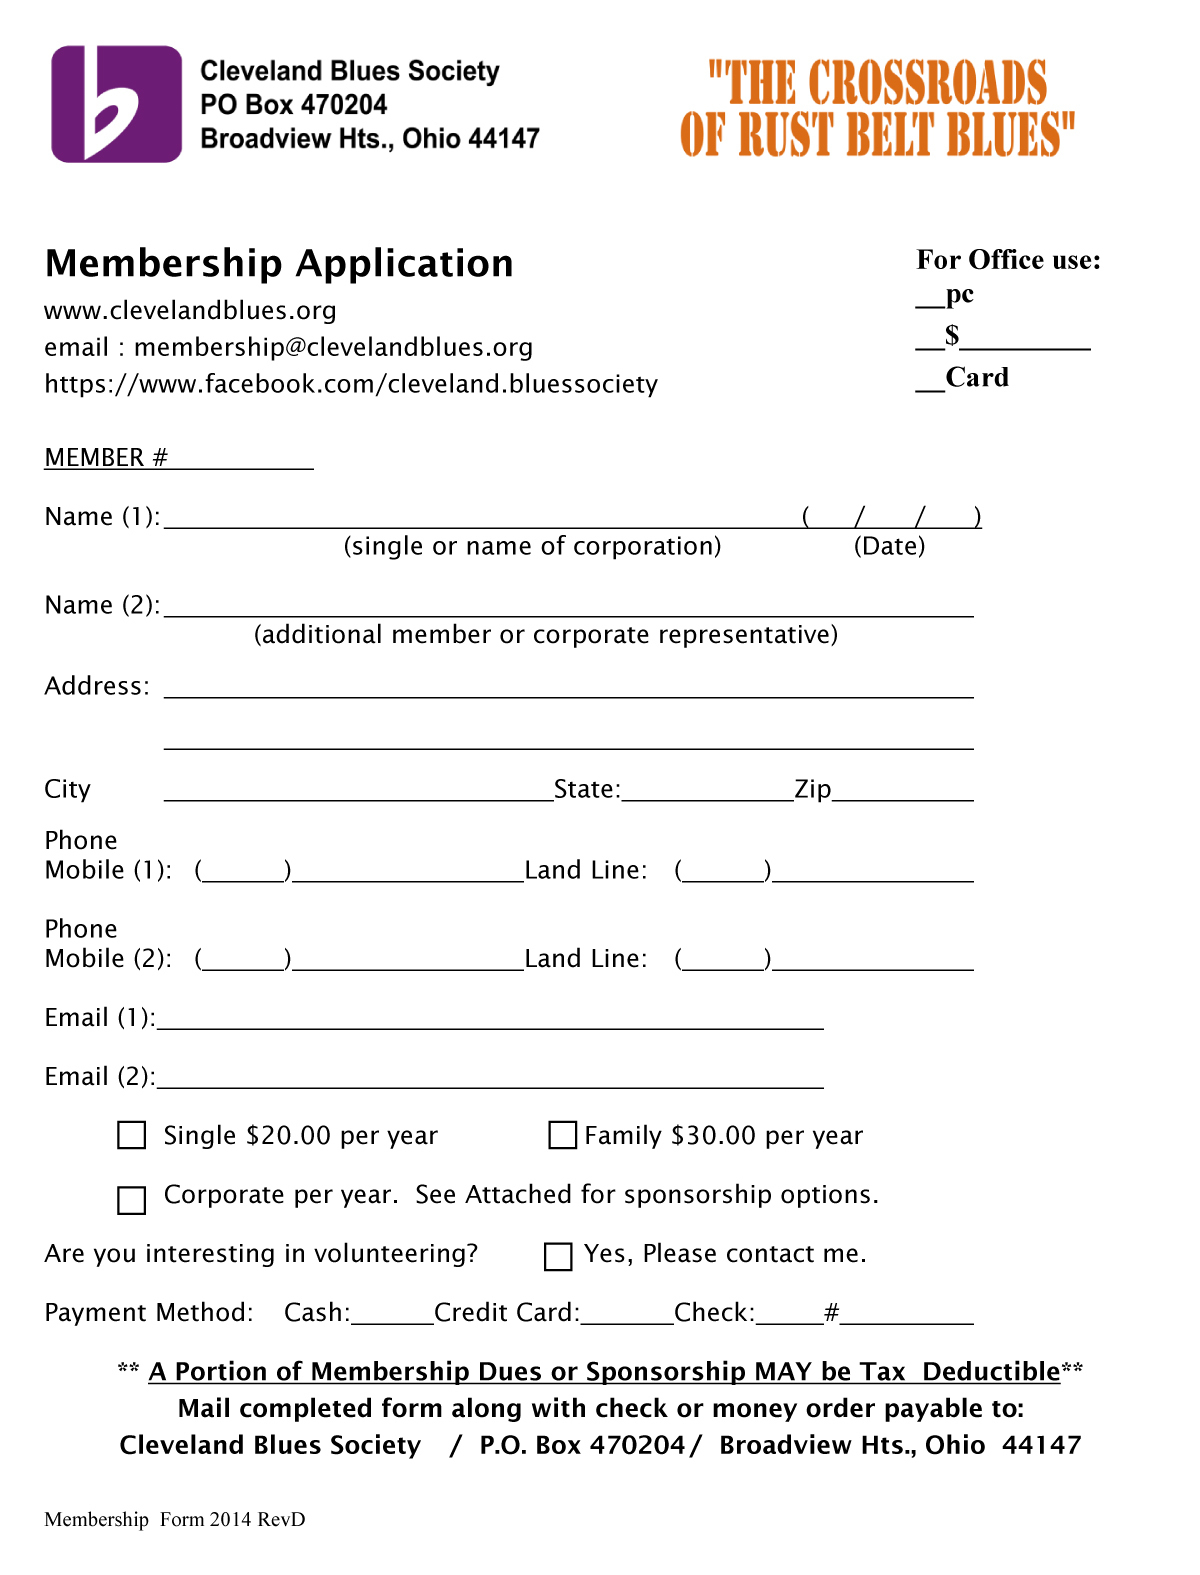 Family Membership MBR002